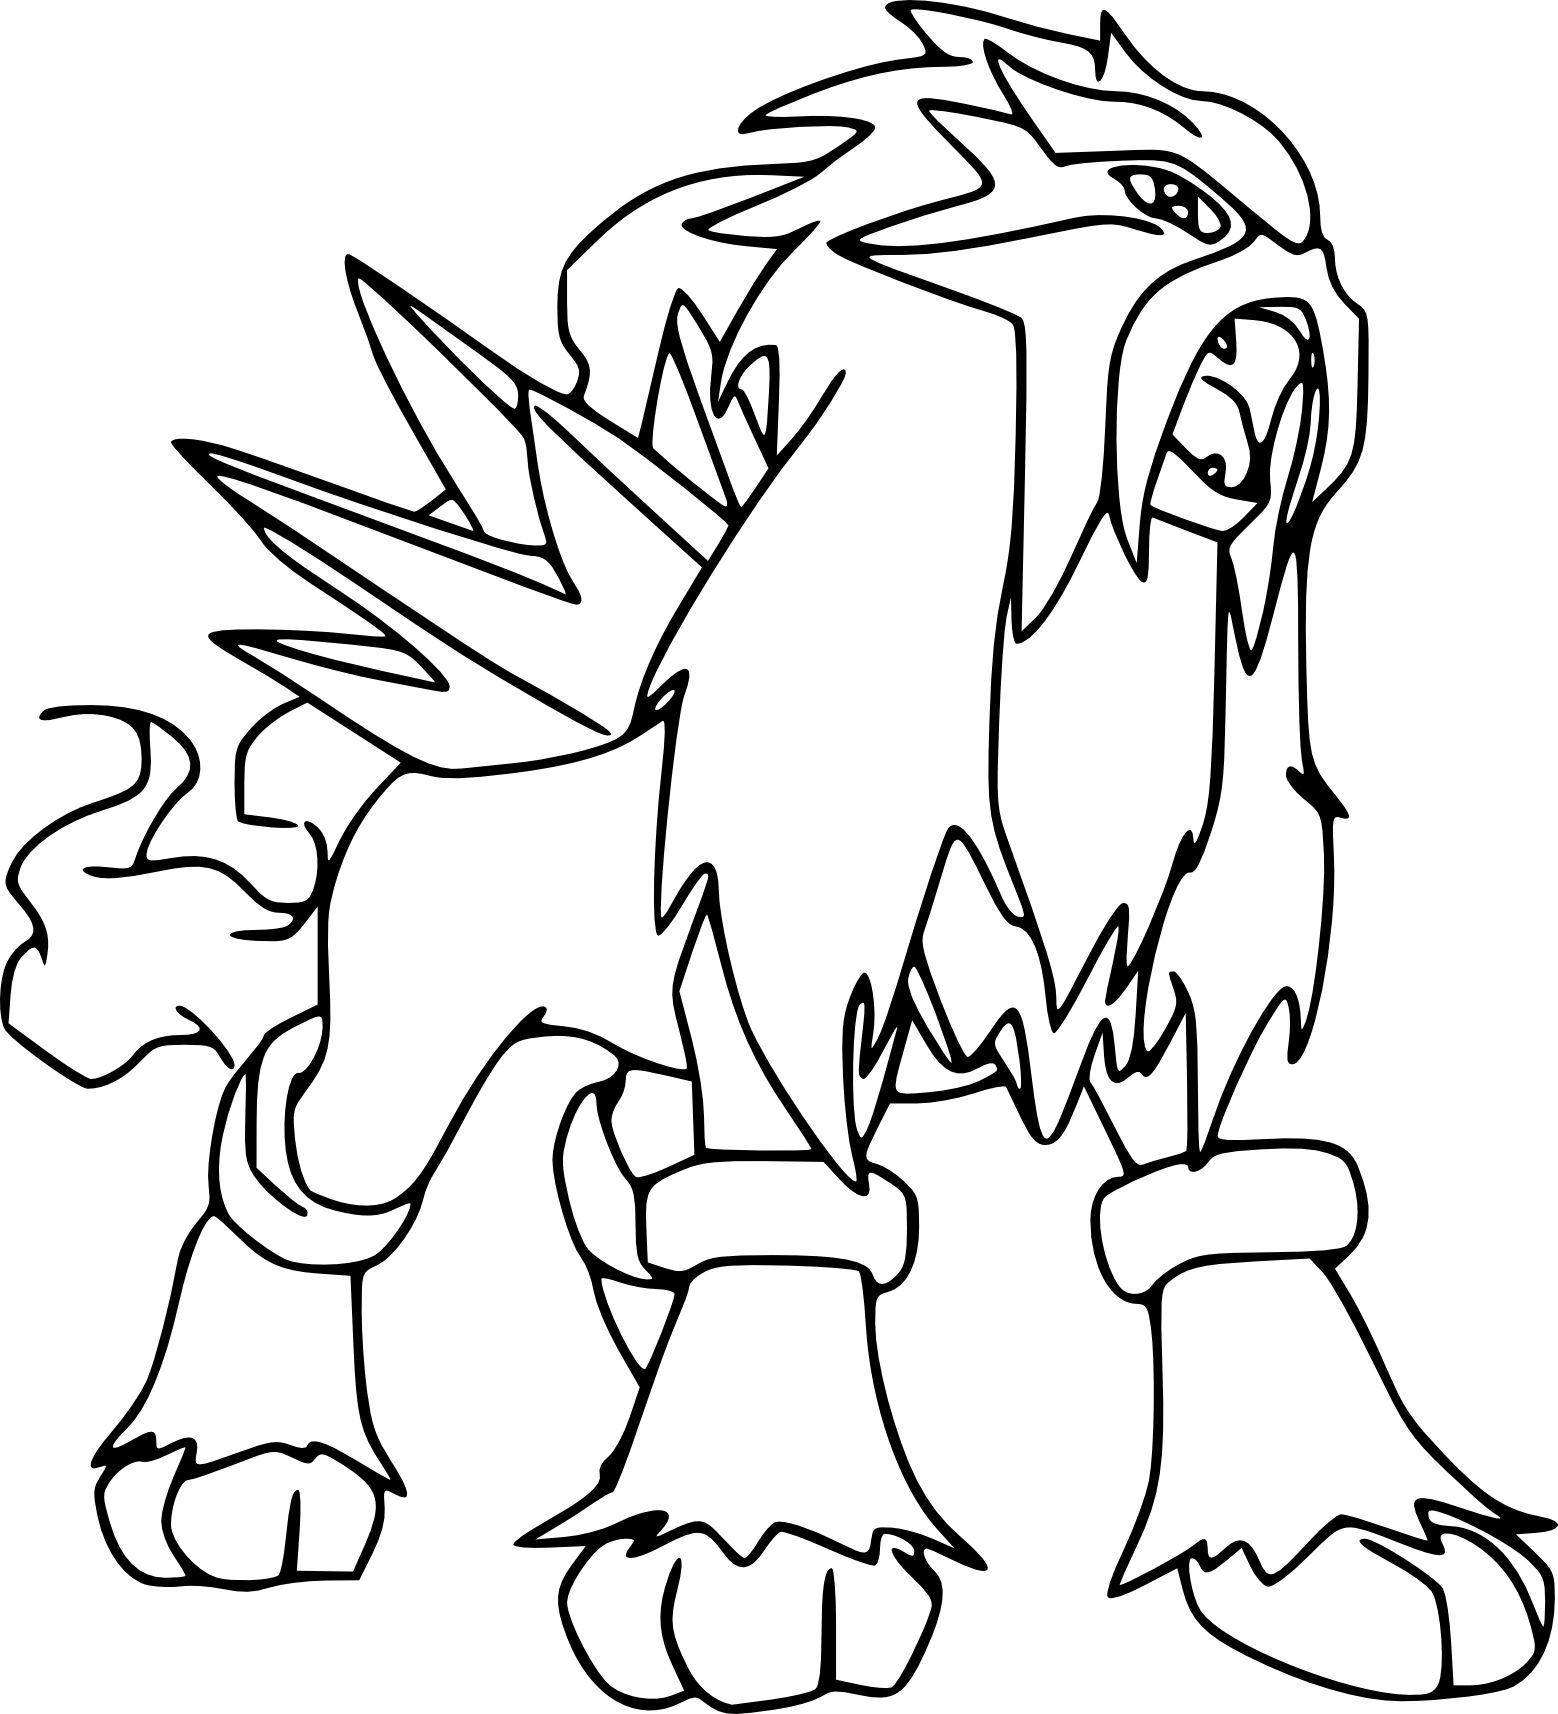 Pokemon Ausmalbilder Entei : Coloriage Pokemon Colorier Dessin Imprimer Pokemon